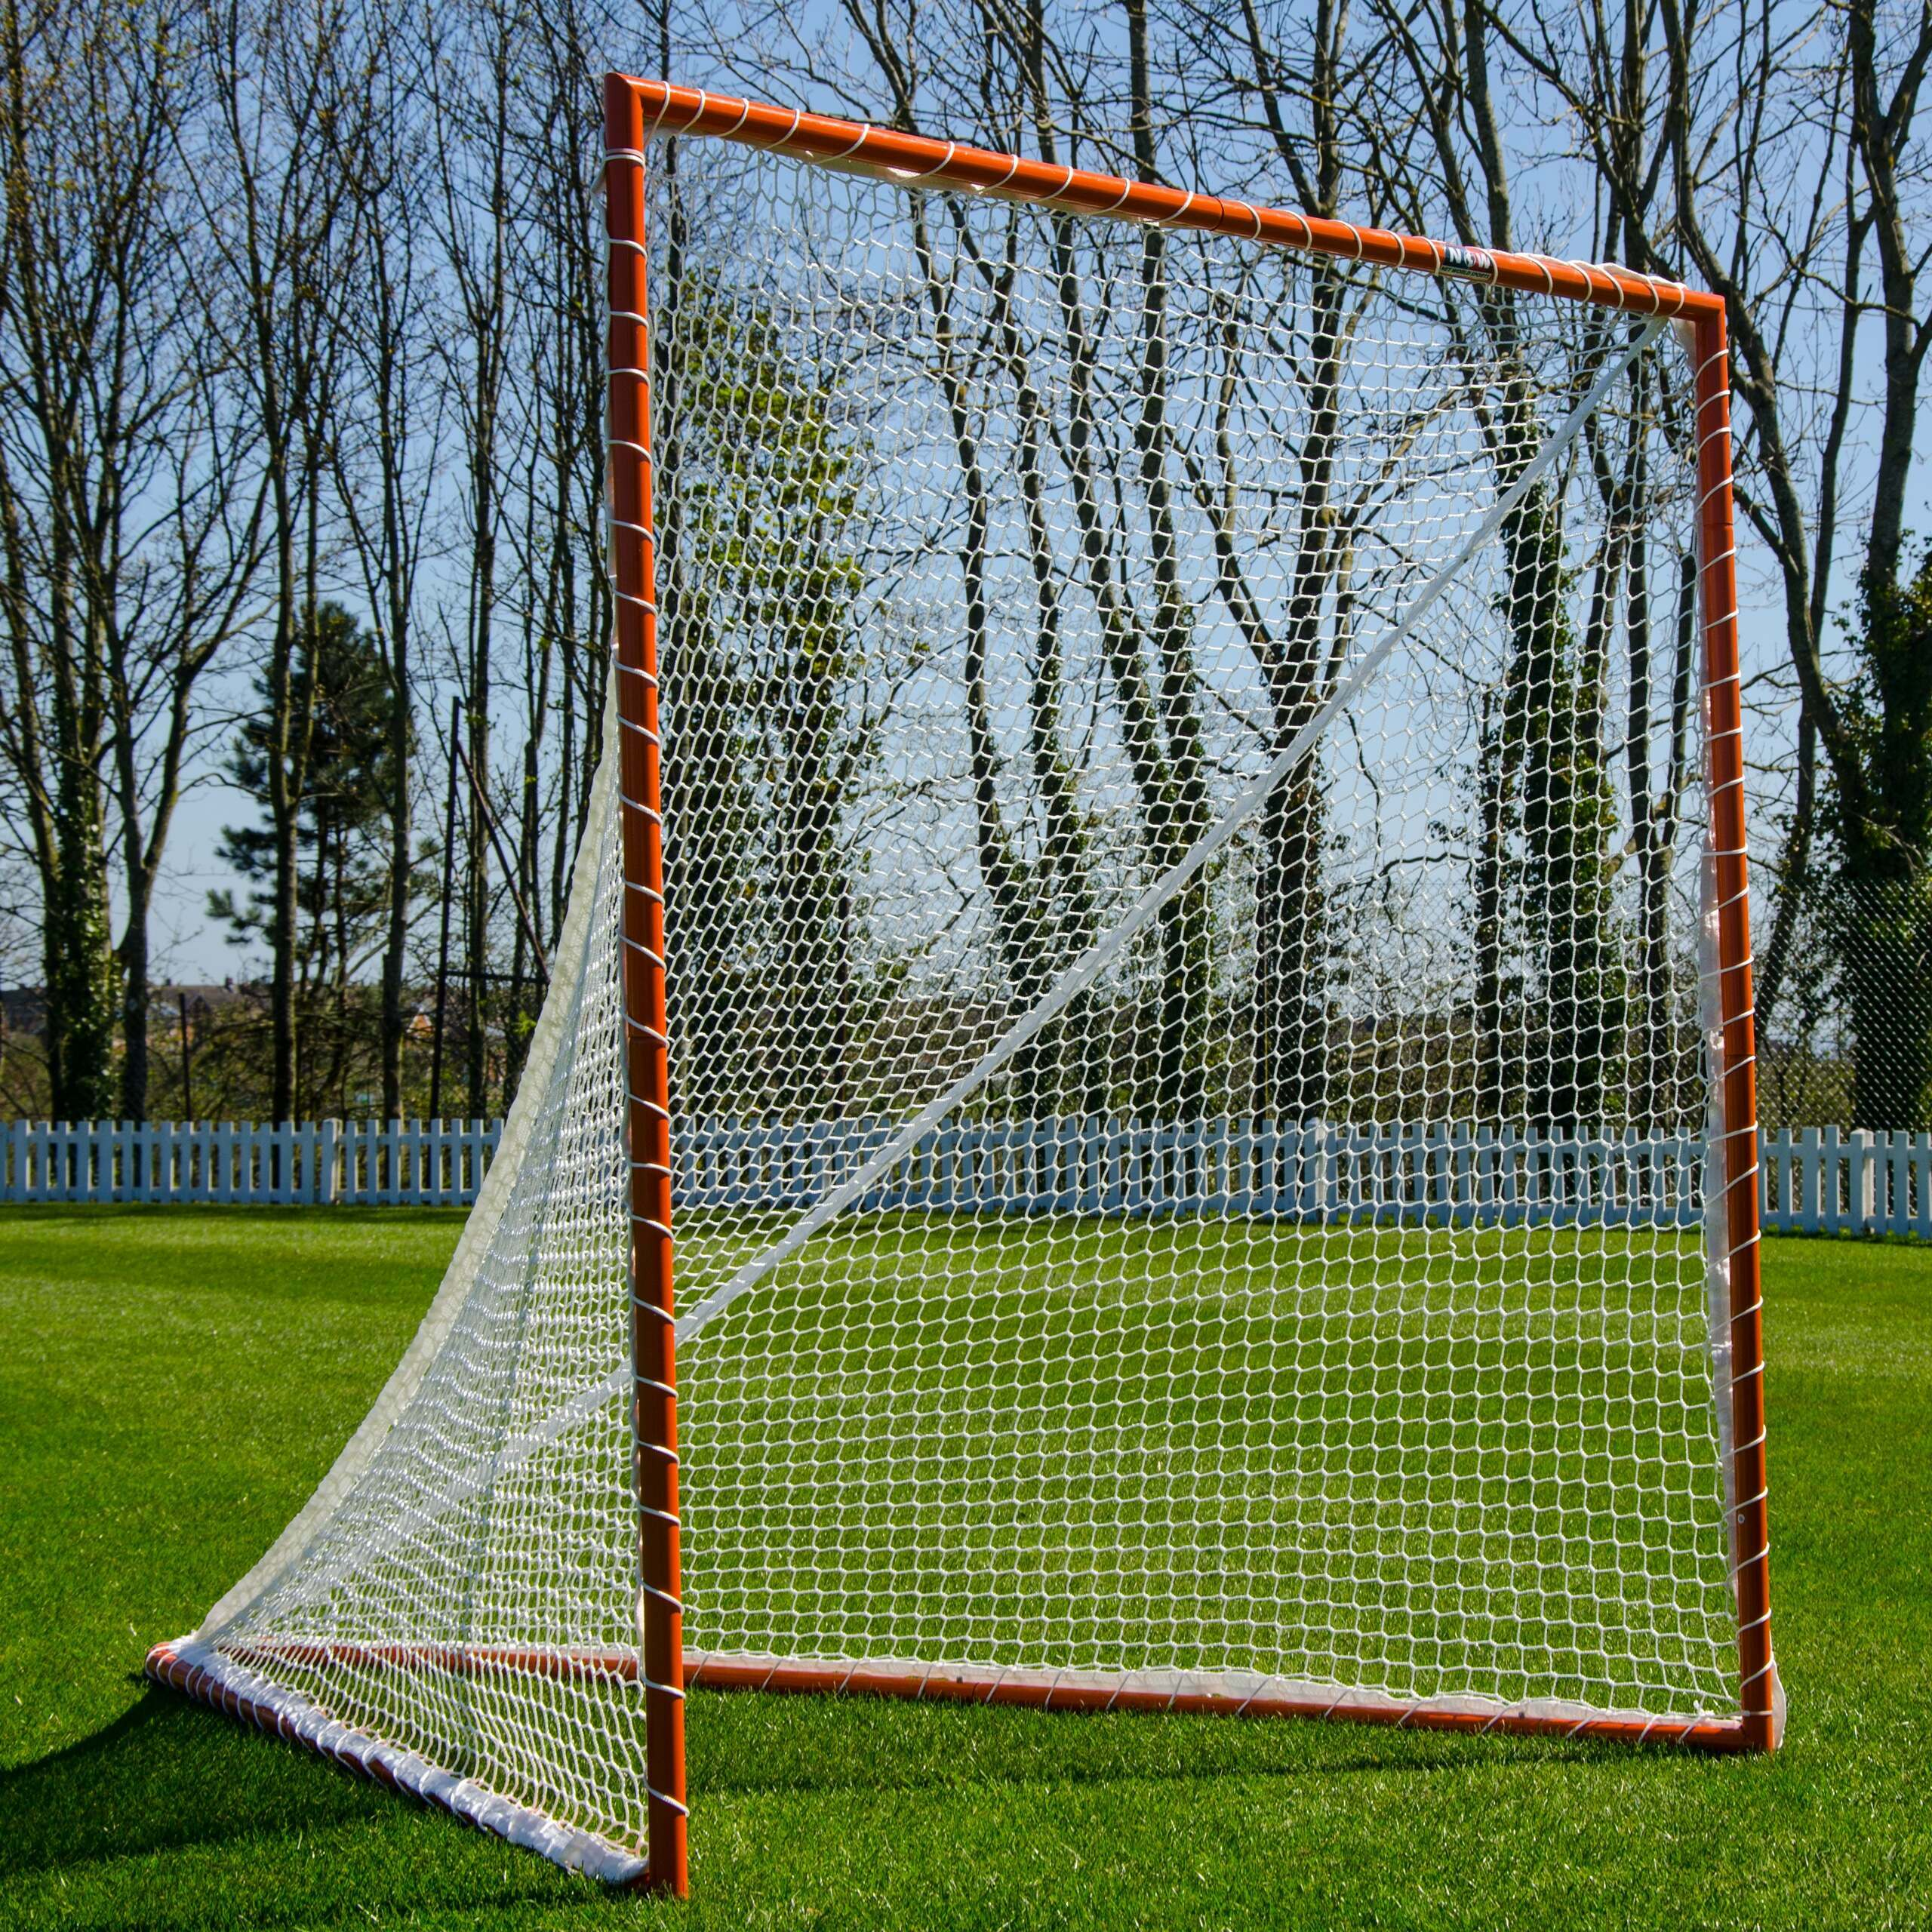 FORZA Regulation Lacrosse Backyard Goal (6 x 6)